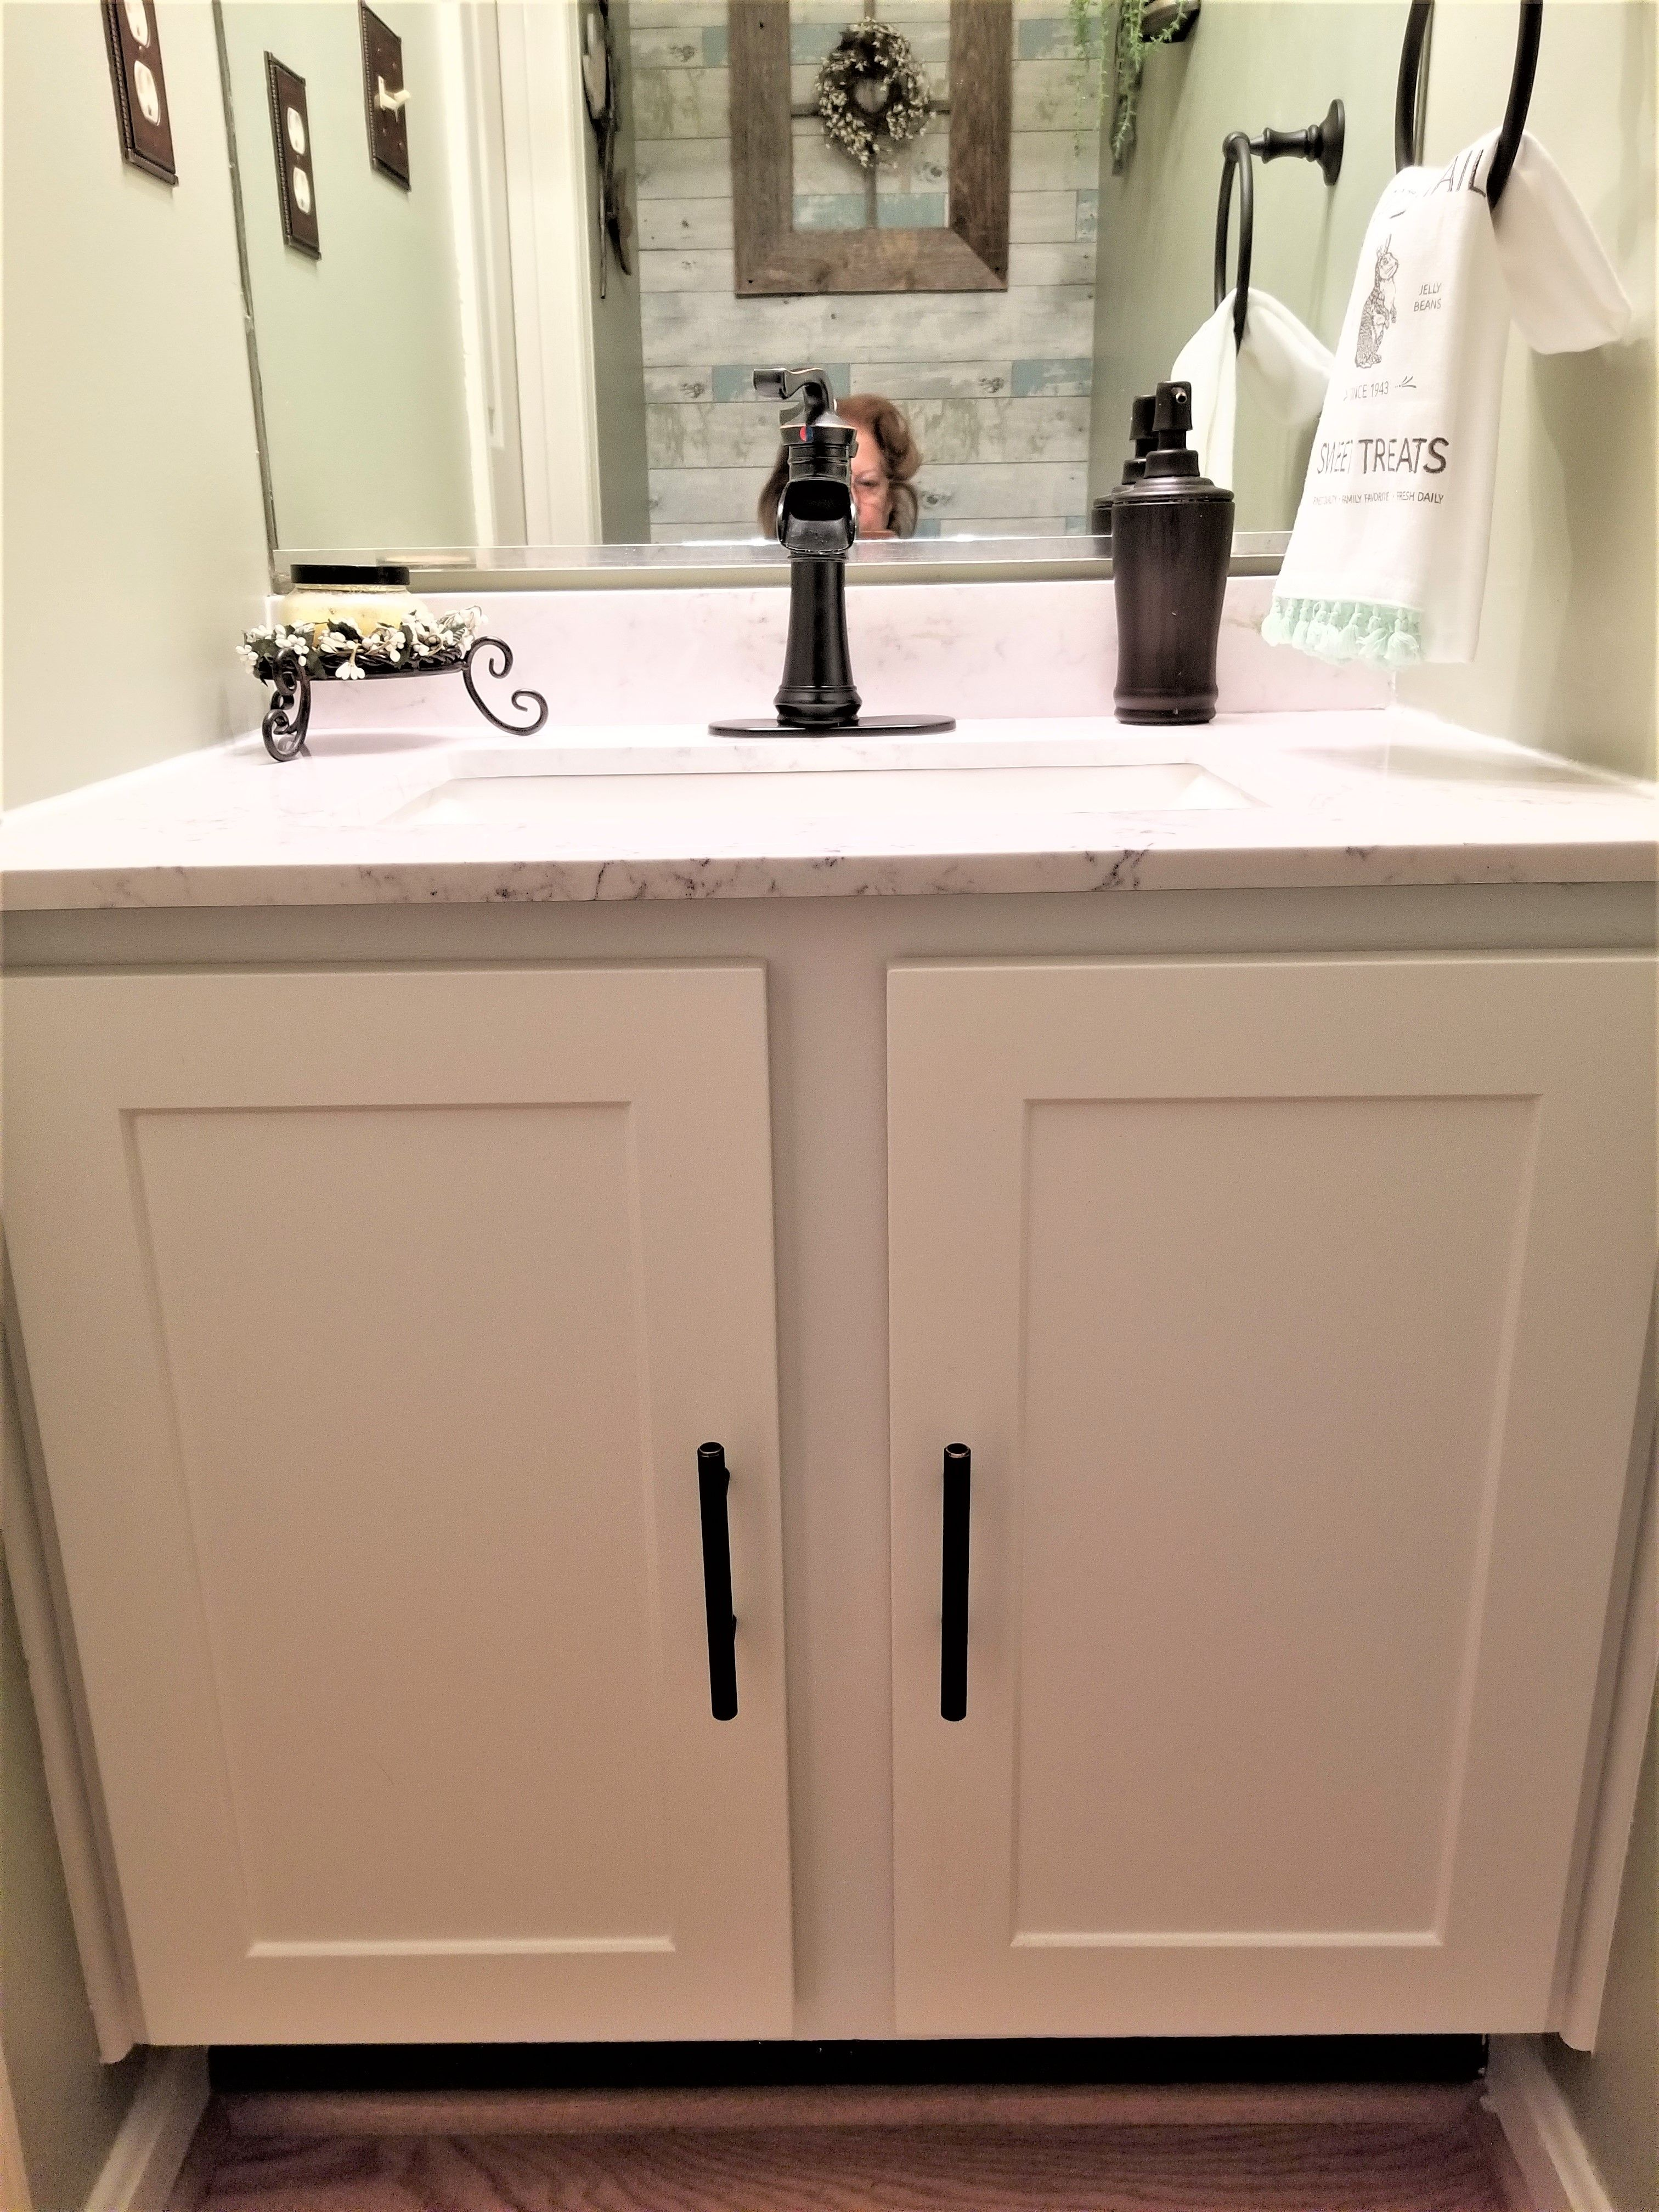 low priced 5ae73 6fdd7 Pin on Bathroom Cabinet Remodeling